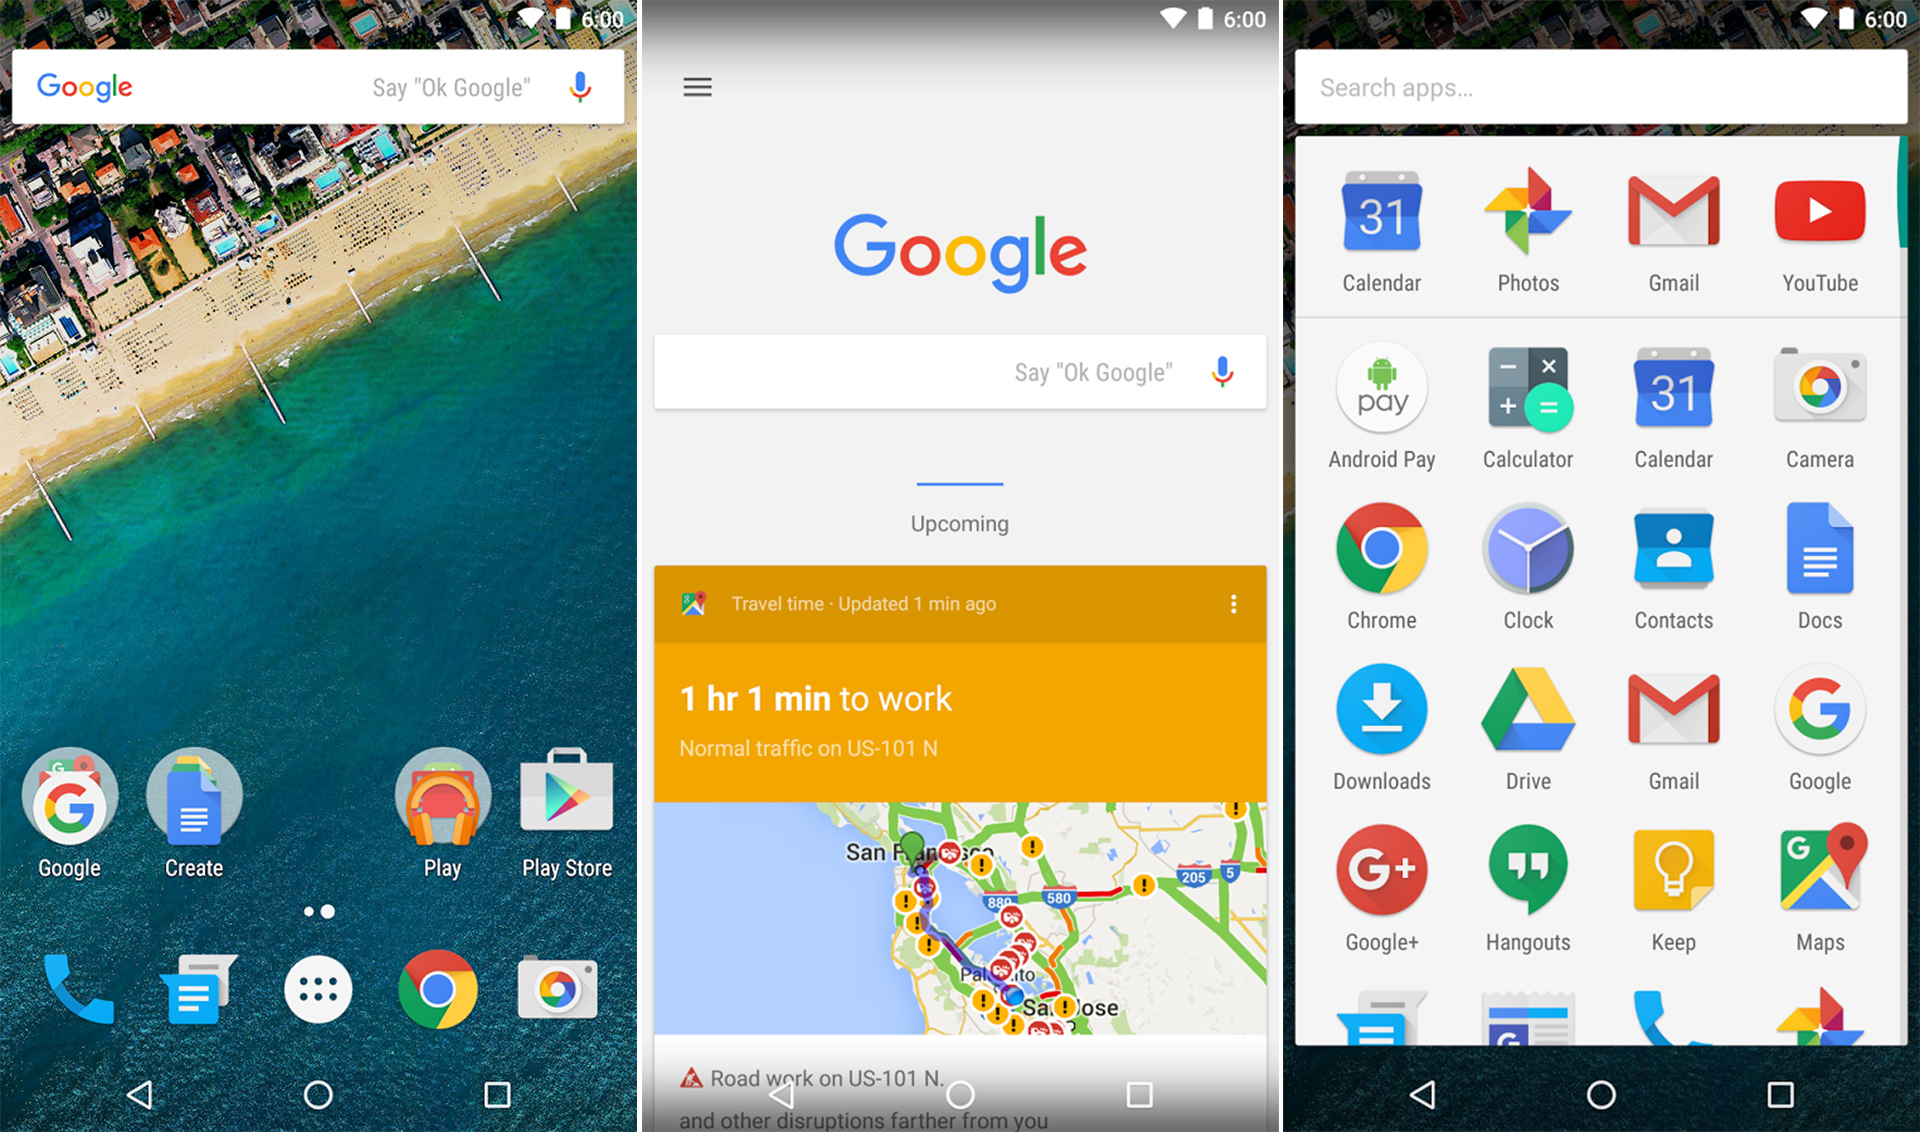 Google Now Launcher To Be Pulled From The Play Store In Q1